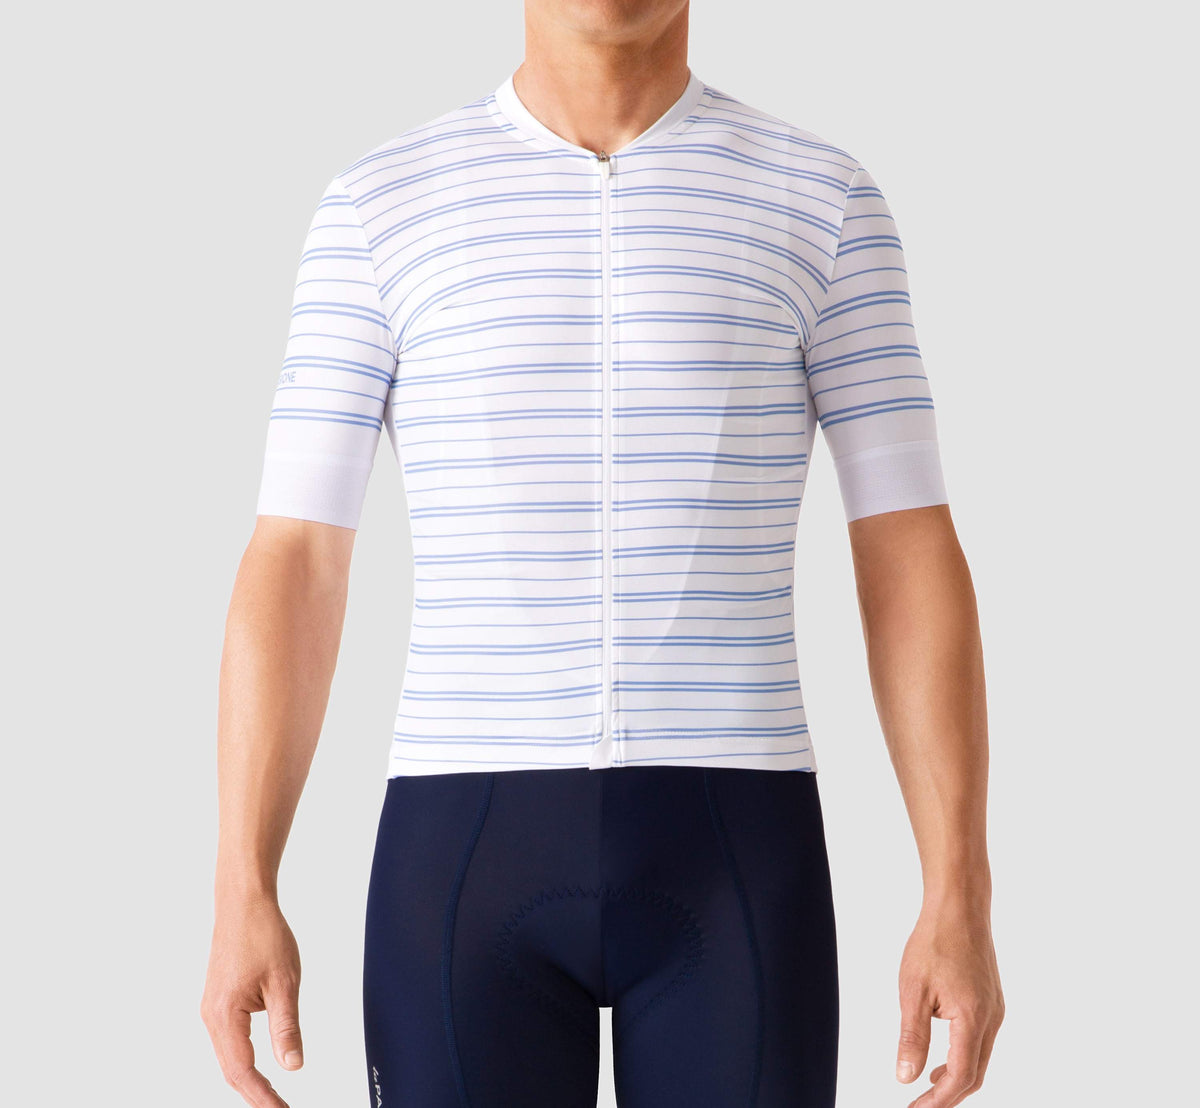 Ultimate Jersey Stripes White/Hortensia